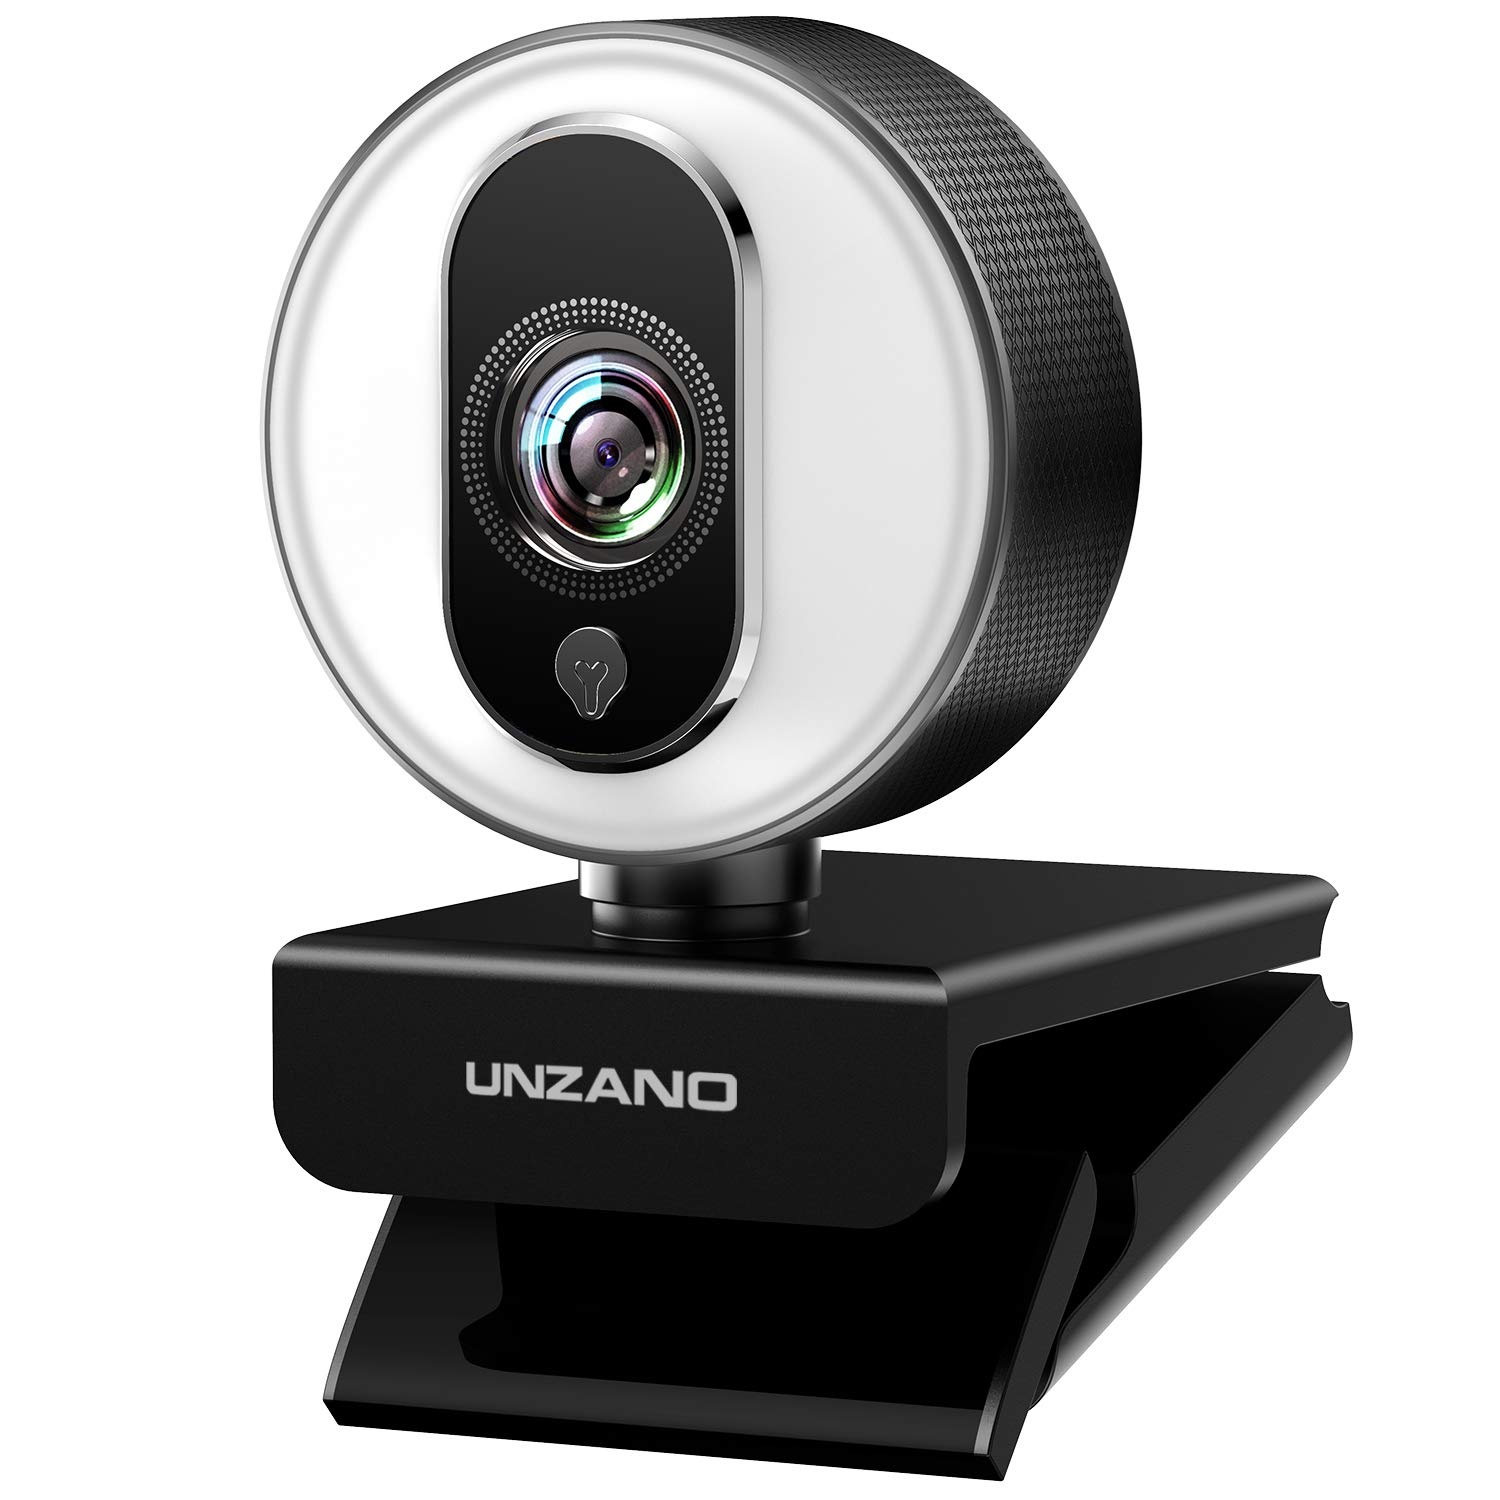 HD Webcam 1080P for Streaming With Ring Light,  External Computer Web Camera With Dual Microphone,  Autofocus Camera for PC Laptop Desktop Mac Video Calling Recording Skype Xbox One YouTube OBS by Decentech